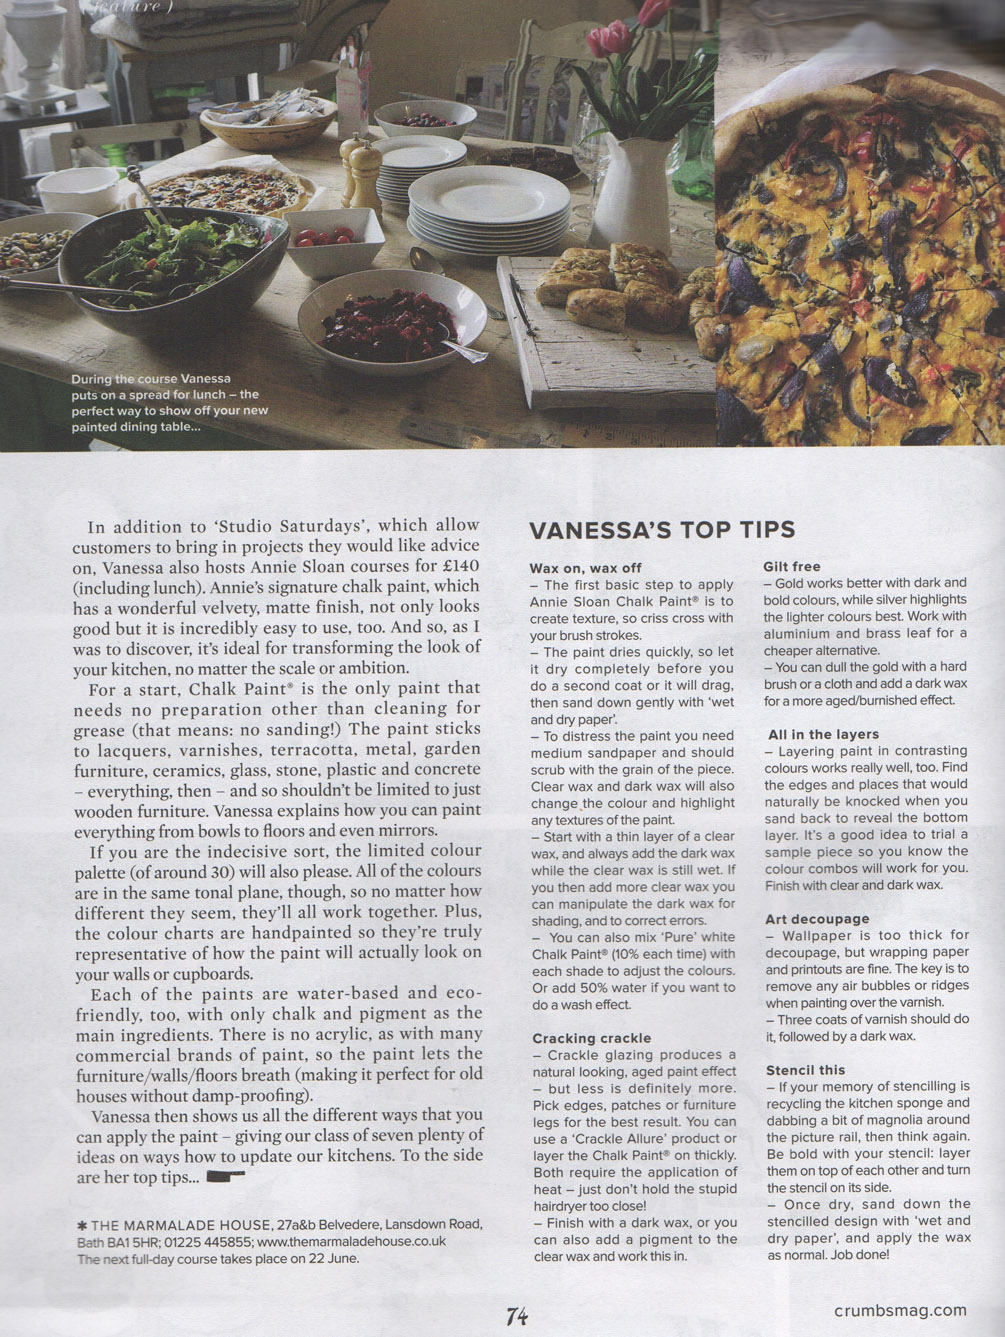 Article 'Kitchen Sync' P.3